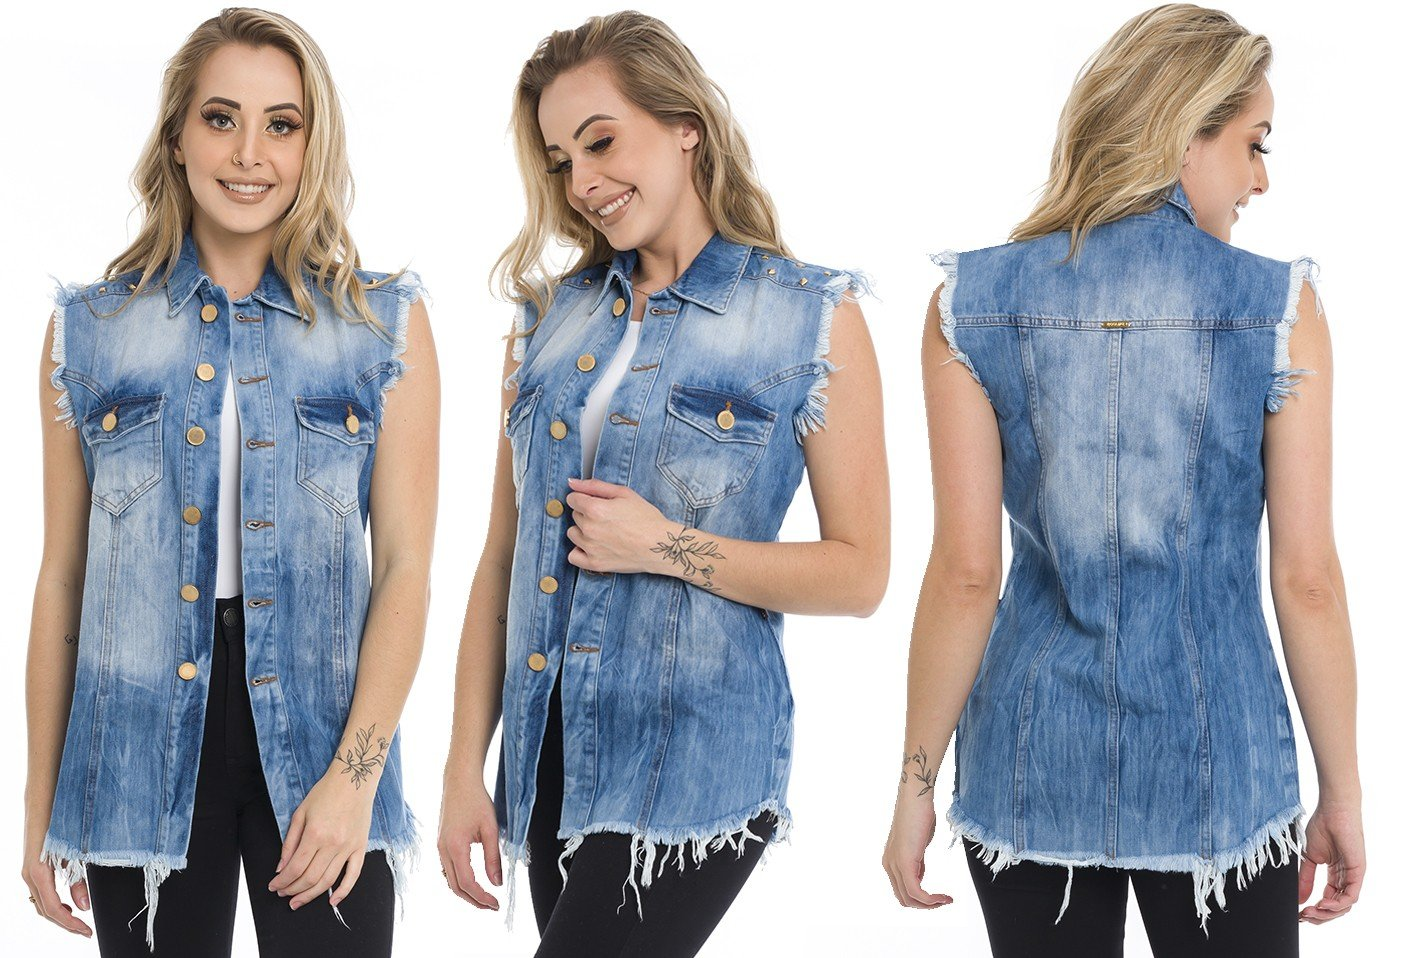 812810  Colete Jeans Oversized Spikes (Completa)